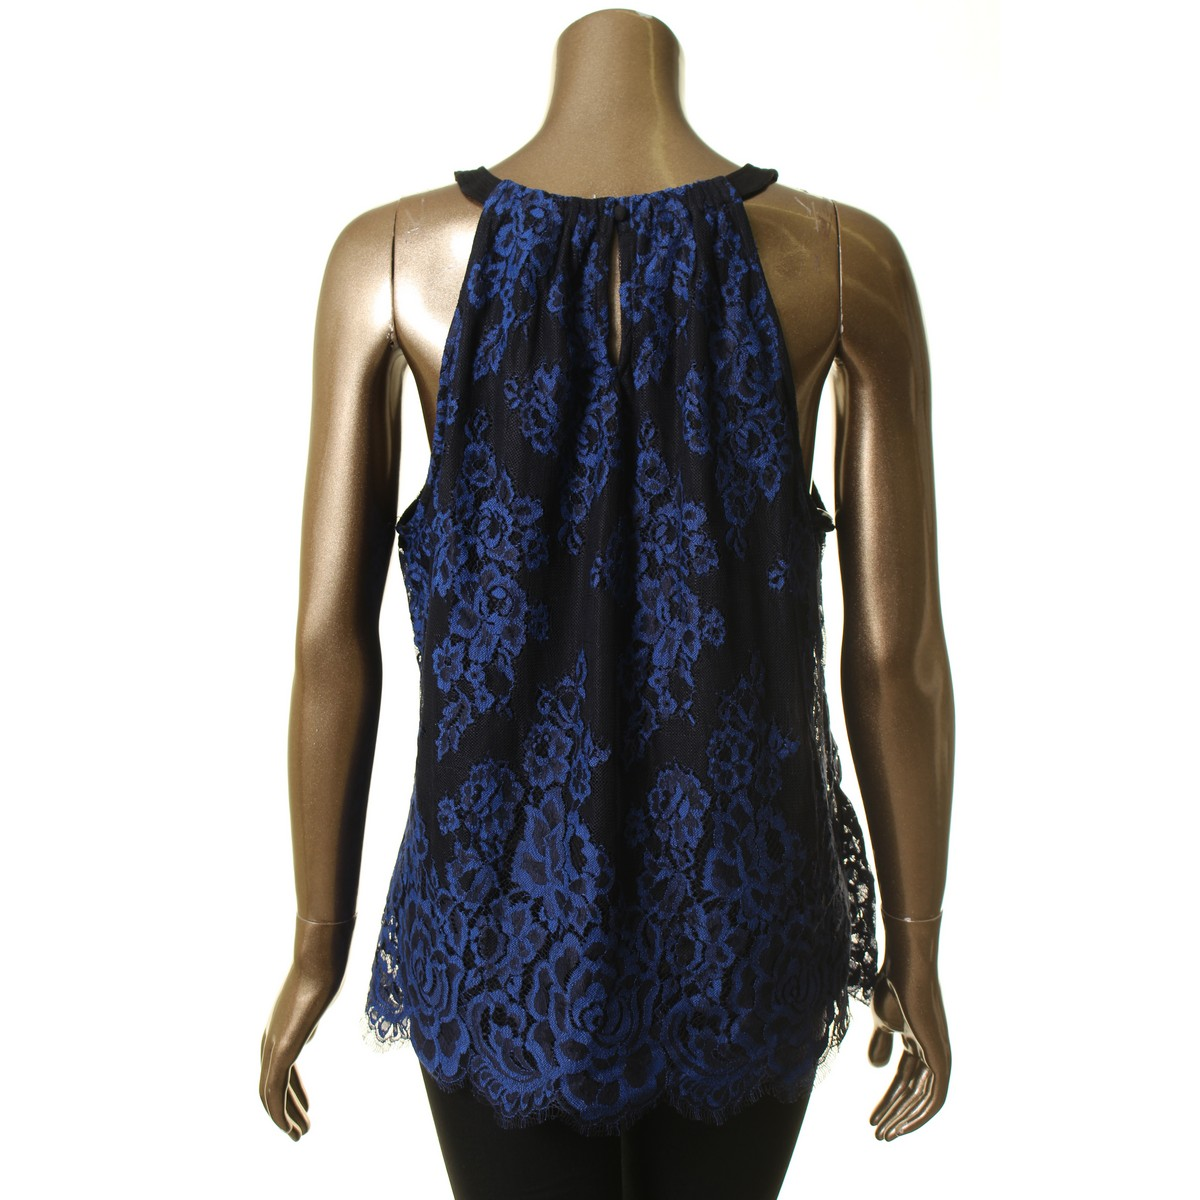 INC-NEW-Women-039-s-Black-amp-Blue-Lace-Halter-Neck-Keyhole-Blouse-Shirt-Top-TEDO thumbnail 4